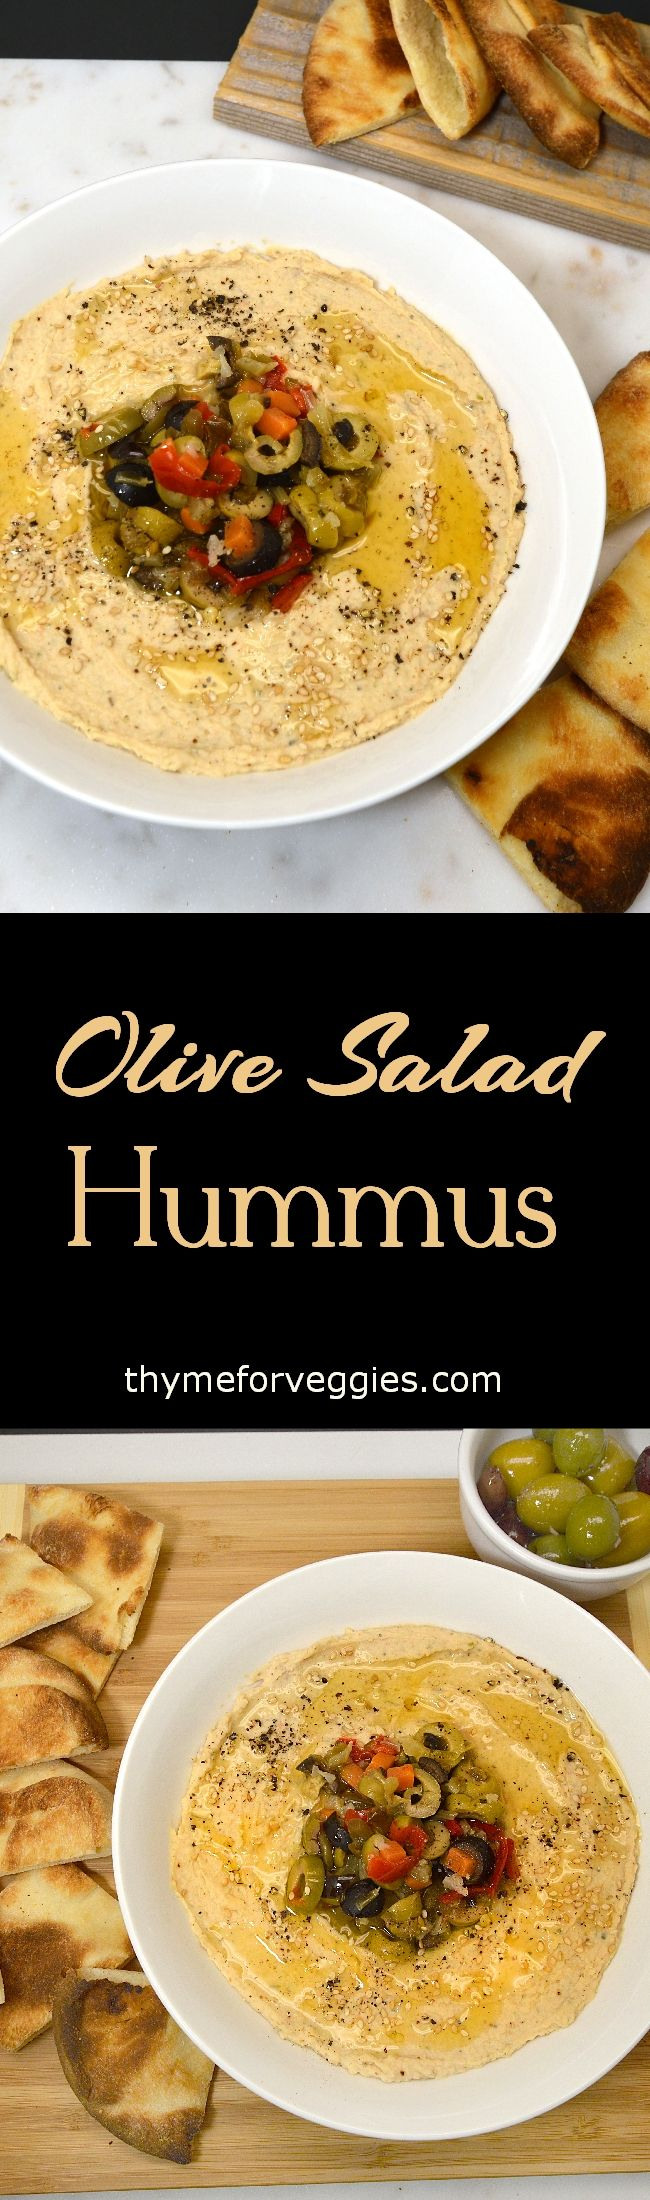 I never had a muffuletta (or muffaletta) sandwich before but I have had the olive salad that makes the sandwich. The signature olive salad consists of olives diced and mixed with celery, carrots, peppers and cauliflower that are pickled, also known as Giardiniera... #appetizer #dairyfree #hummus